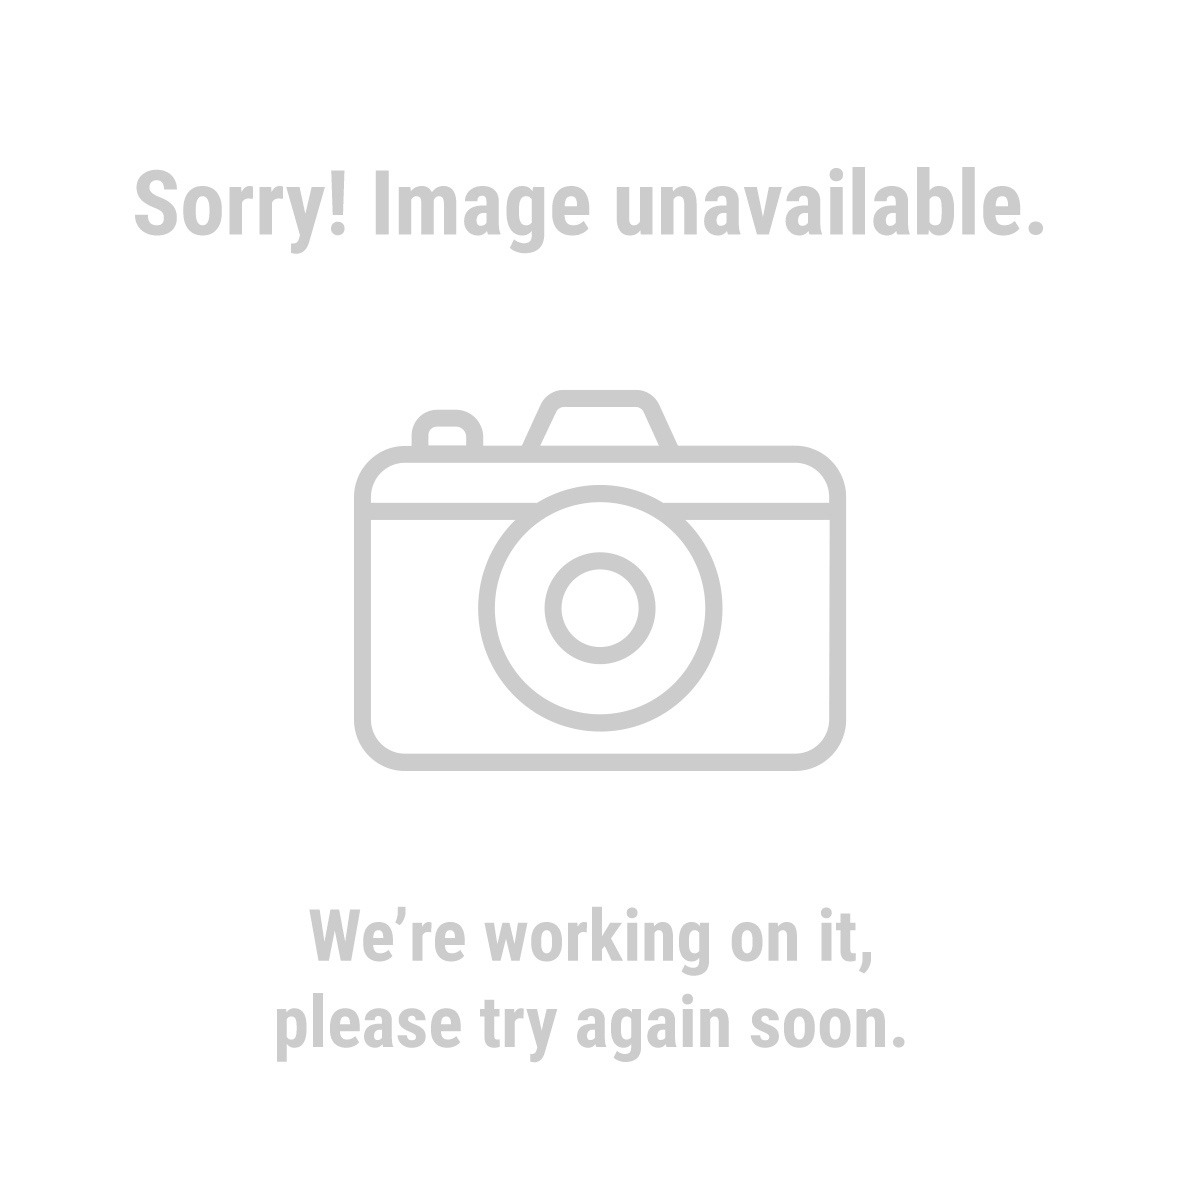 Holt Industries 62643 2.3 gal. Manual Fluid Extractor